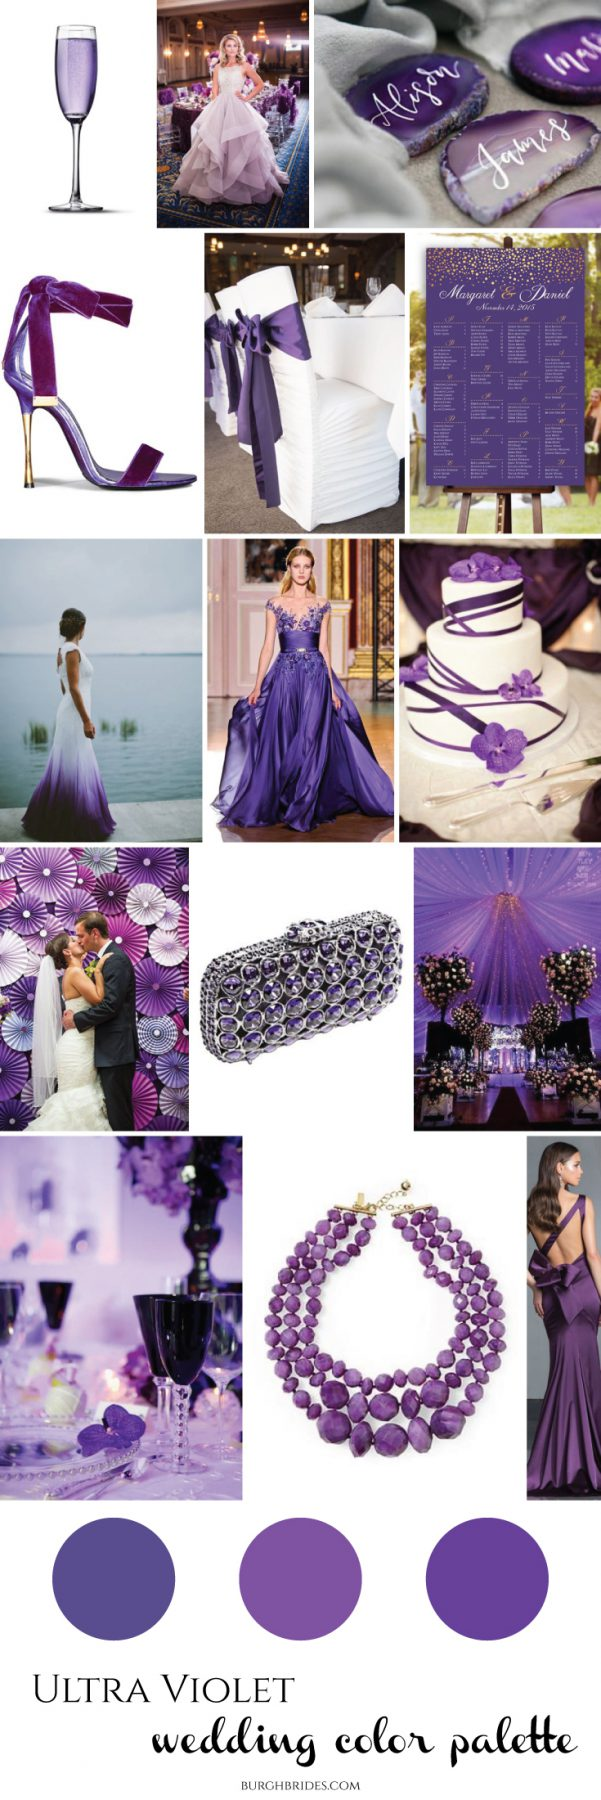 Ultra Violet Wedding Inspiration from Burgh Brides: 2018 Pantone Color of the Year